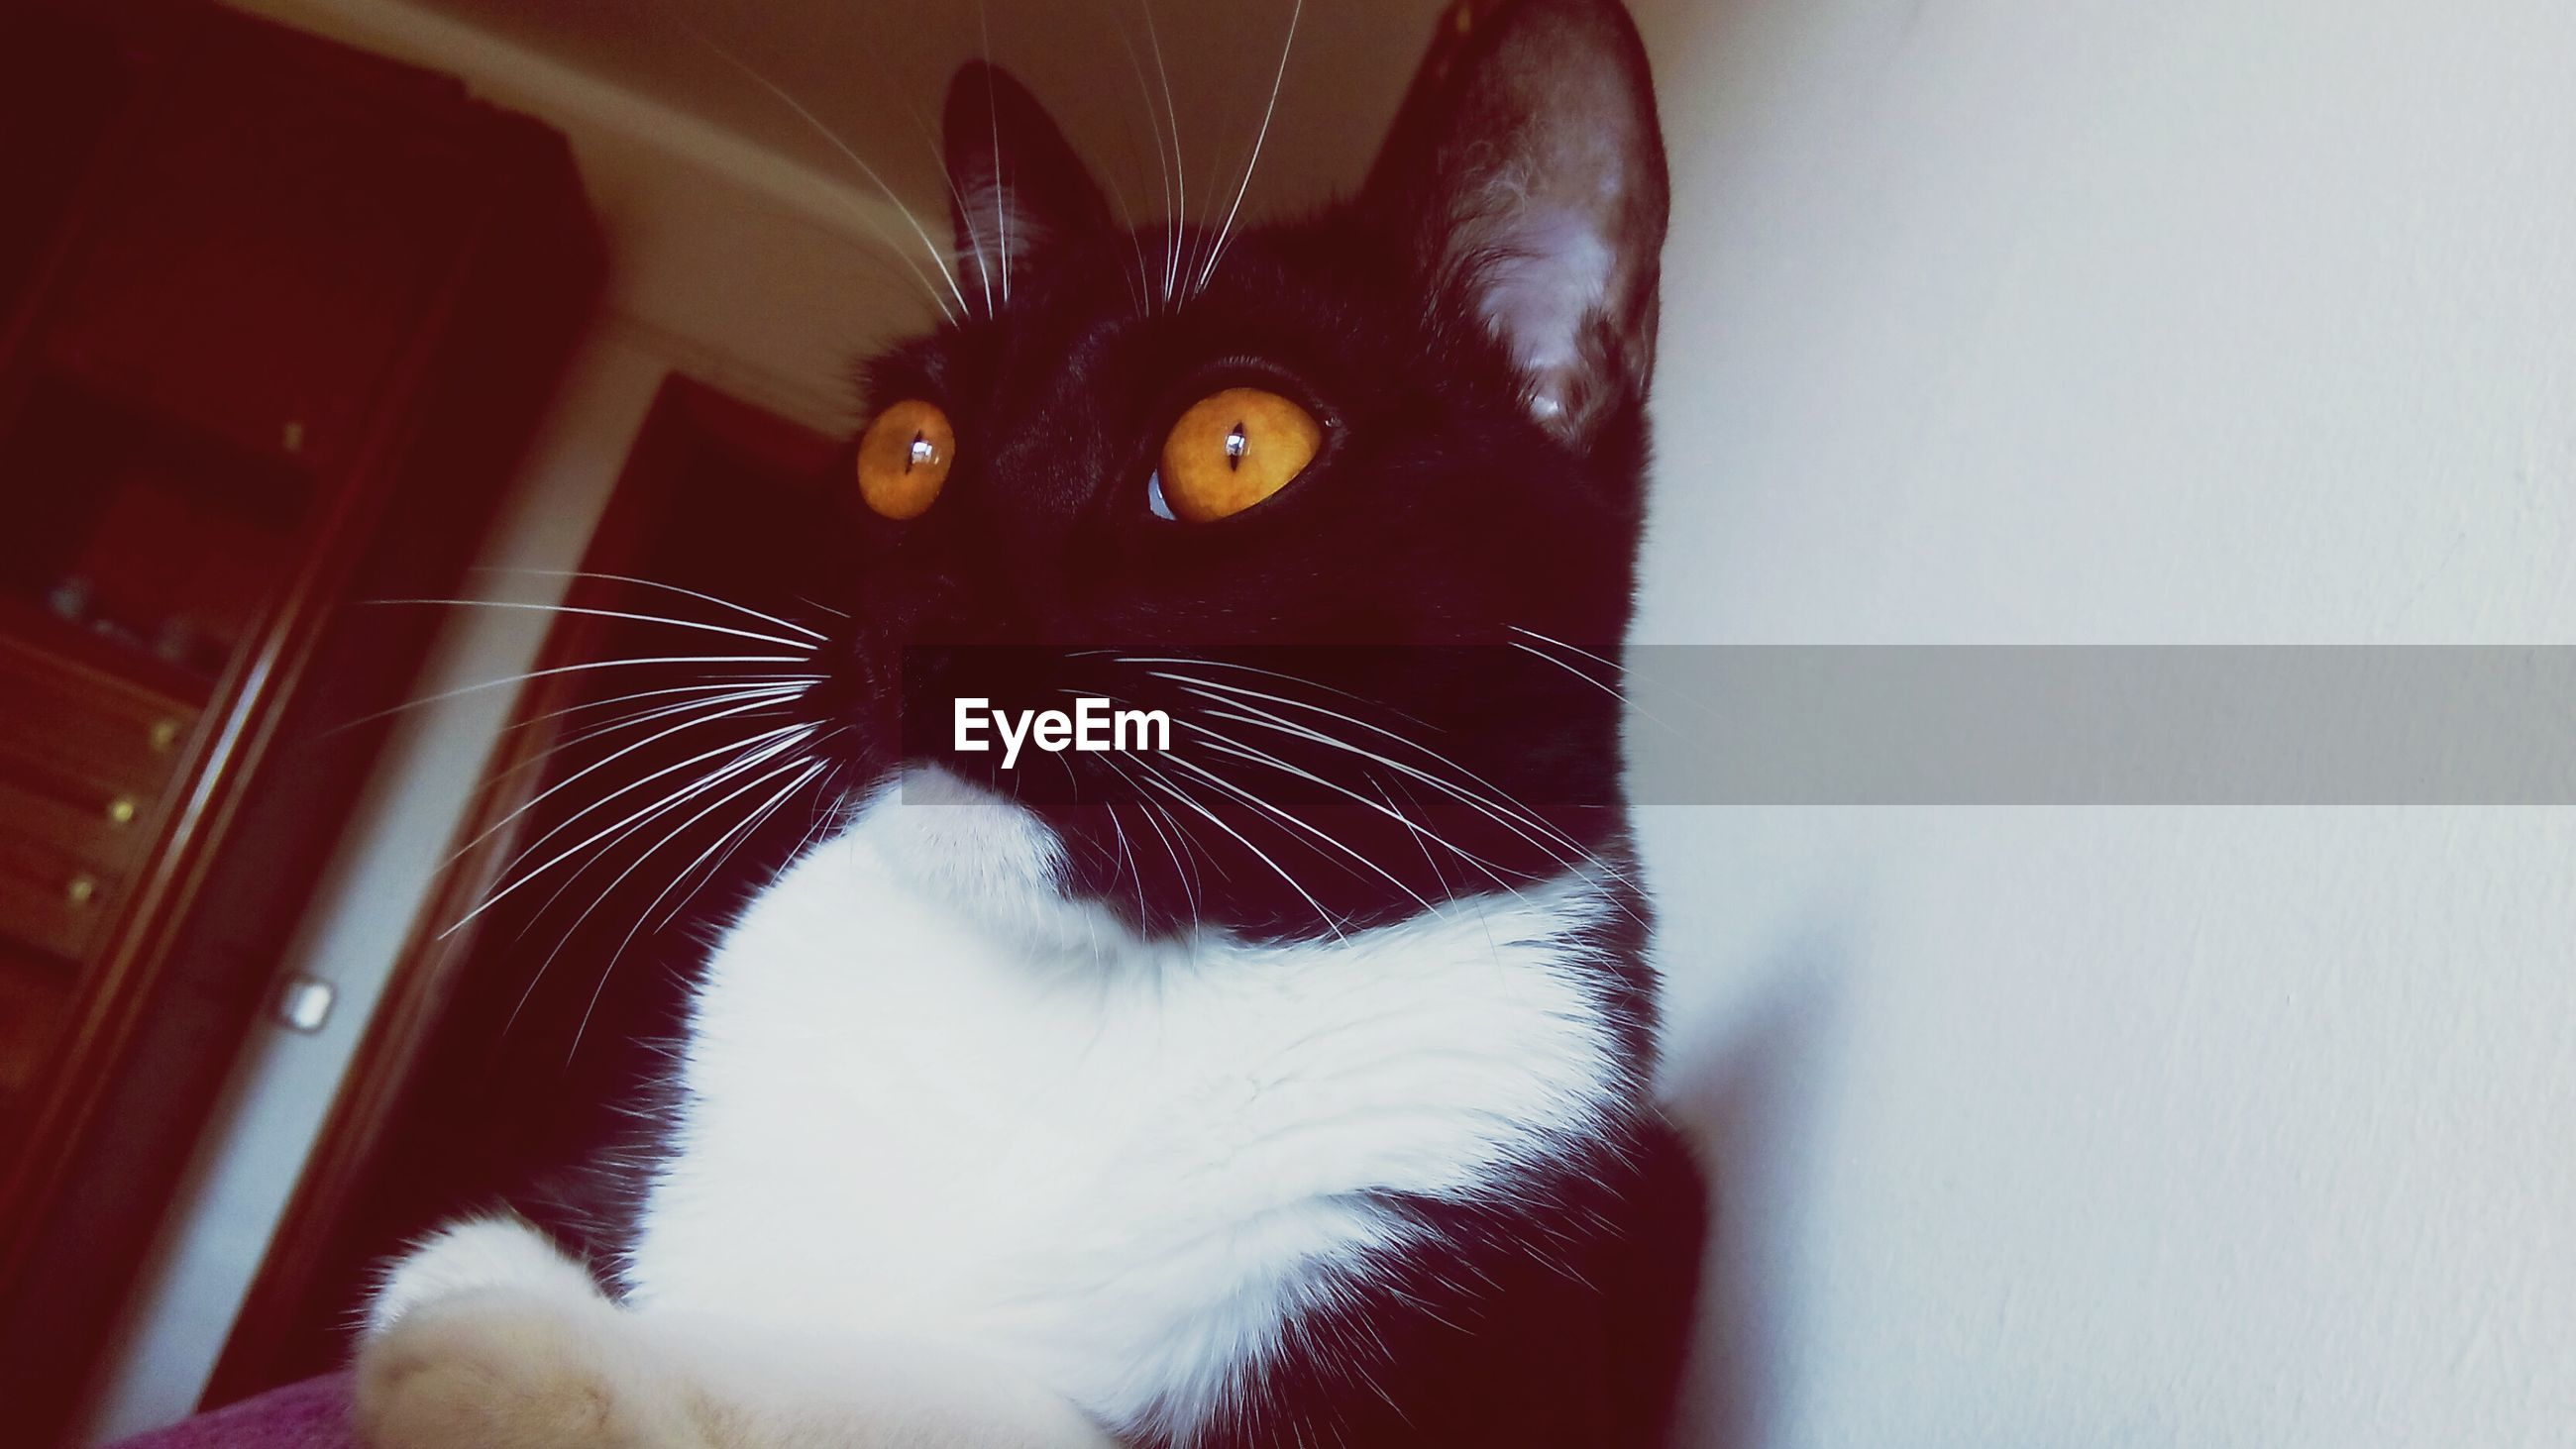 animal themes, one animal, pets, domestic animals, domestic cat, mammal, cat, feline, whisker, indoors, close-up, animal body part, black color, animal head, zoology, animal eye, wildlife, insect, vertebrate, no people